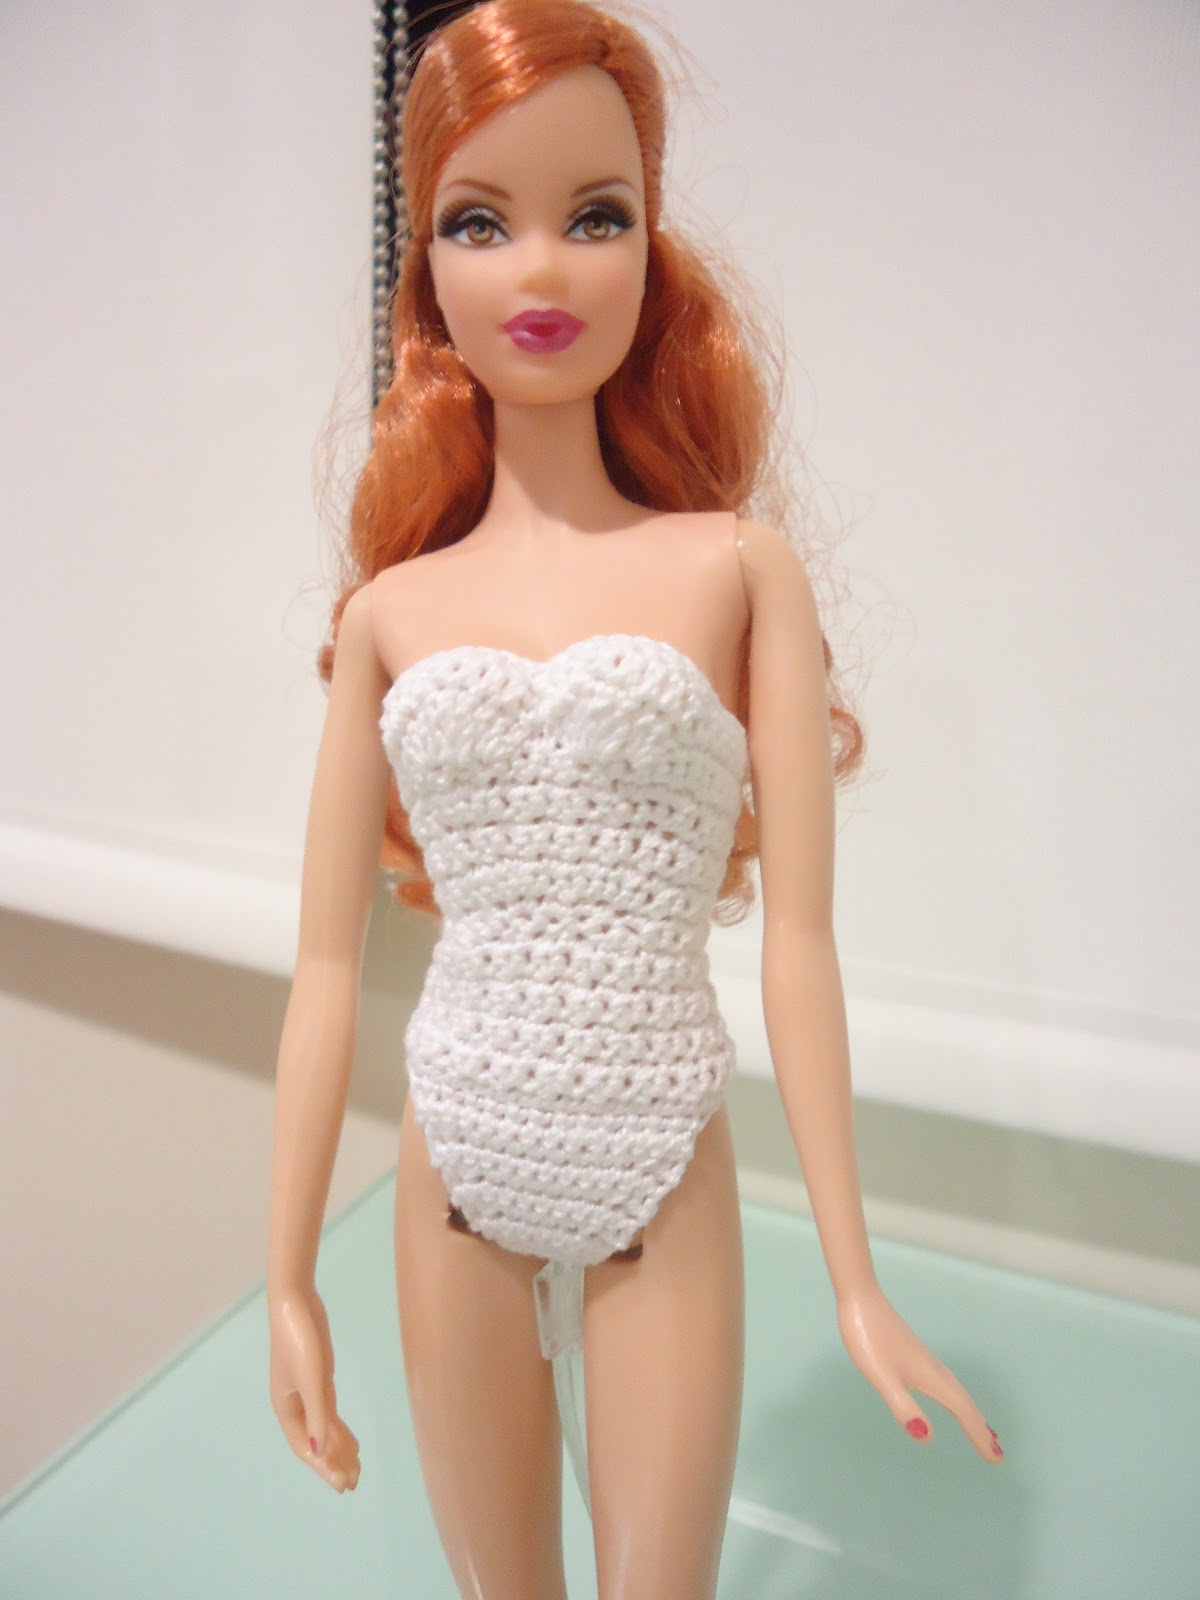 ... new pattern in Hubpages for a Bodysuit/Swimsuit for Barbie doll